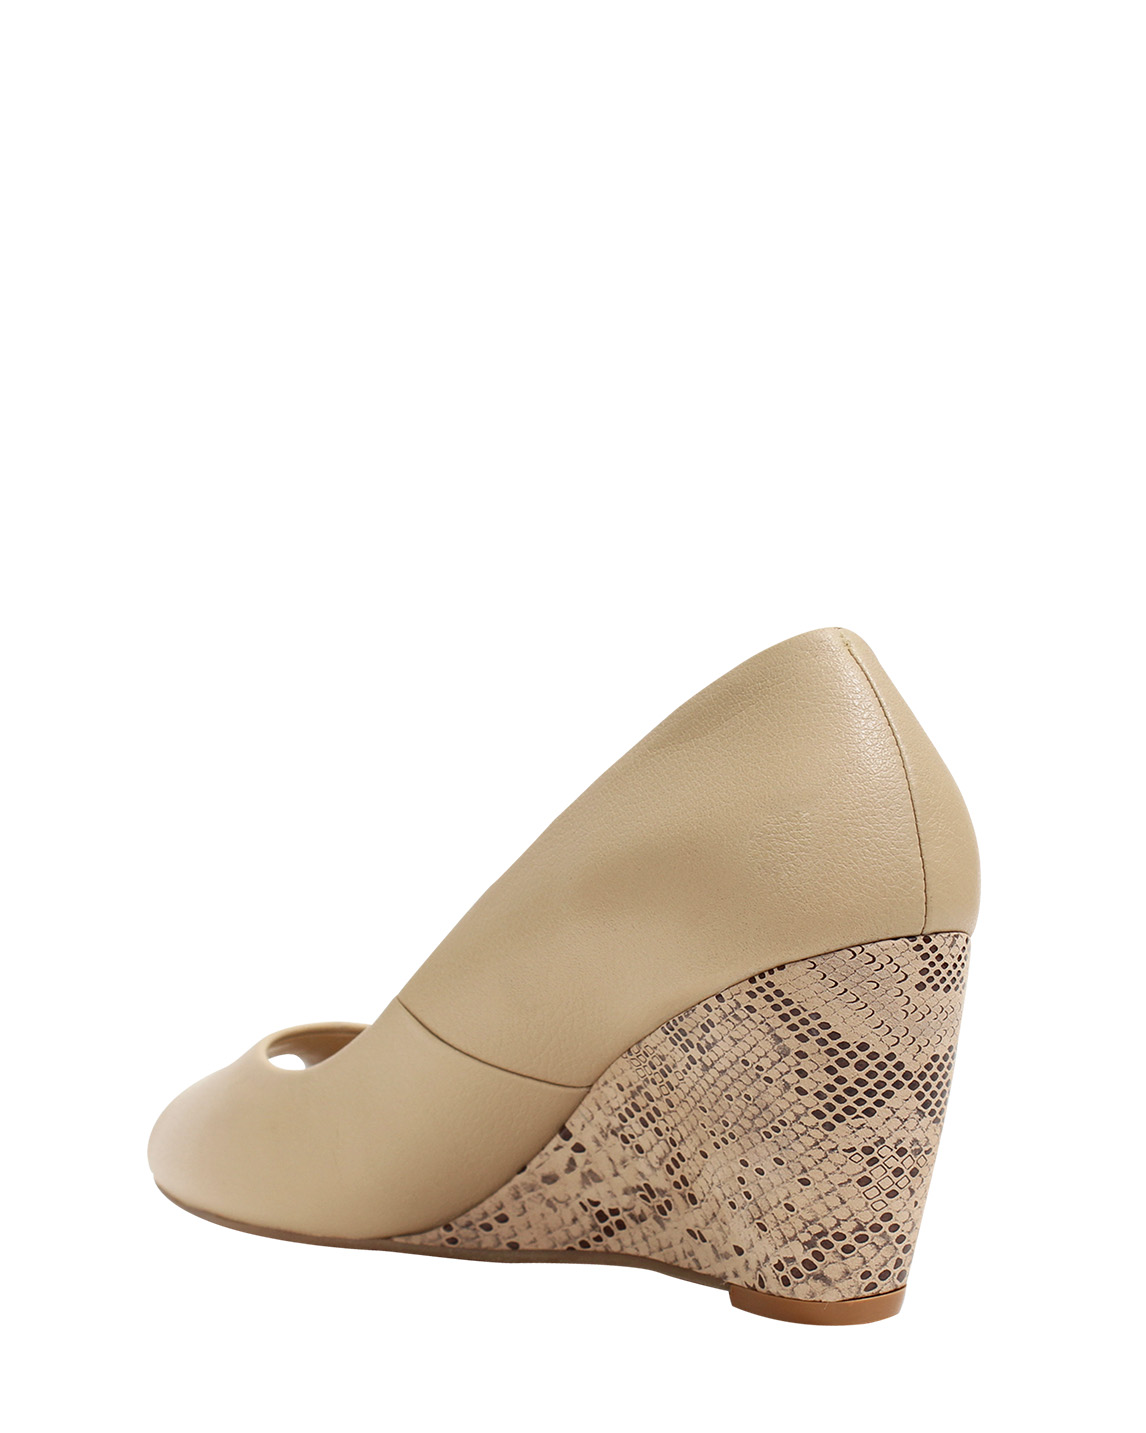 Calzado Peep Toe FRP-7709 Color Beige